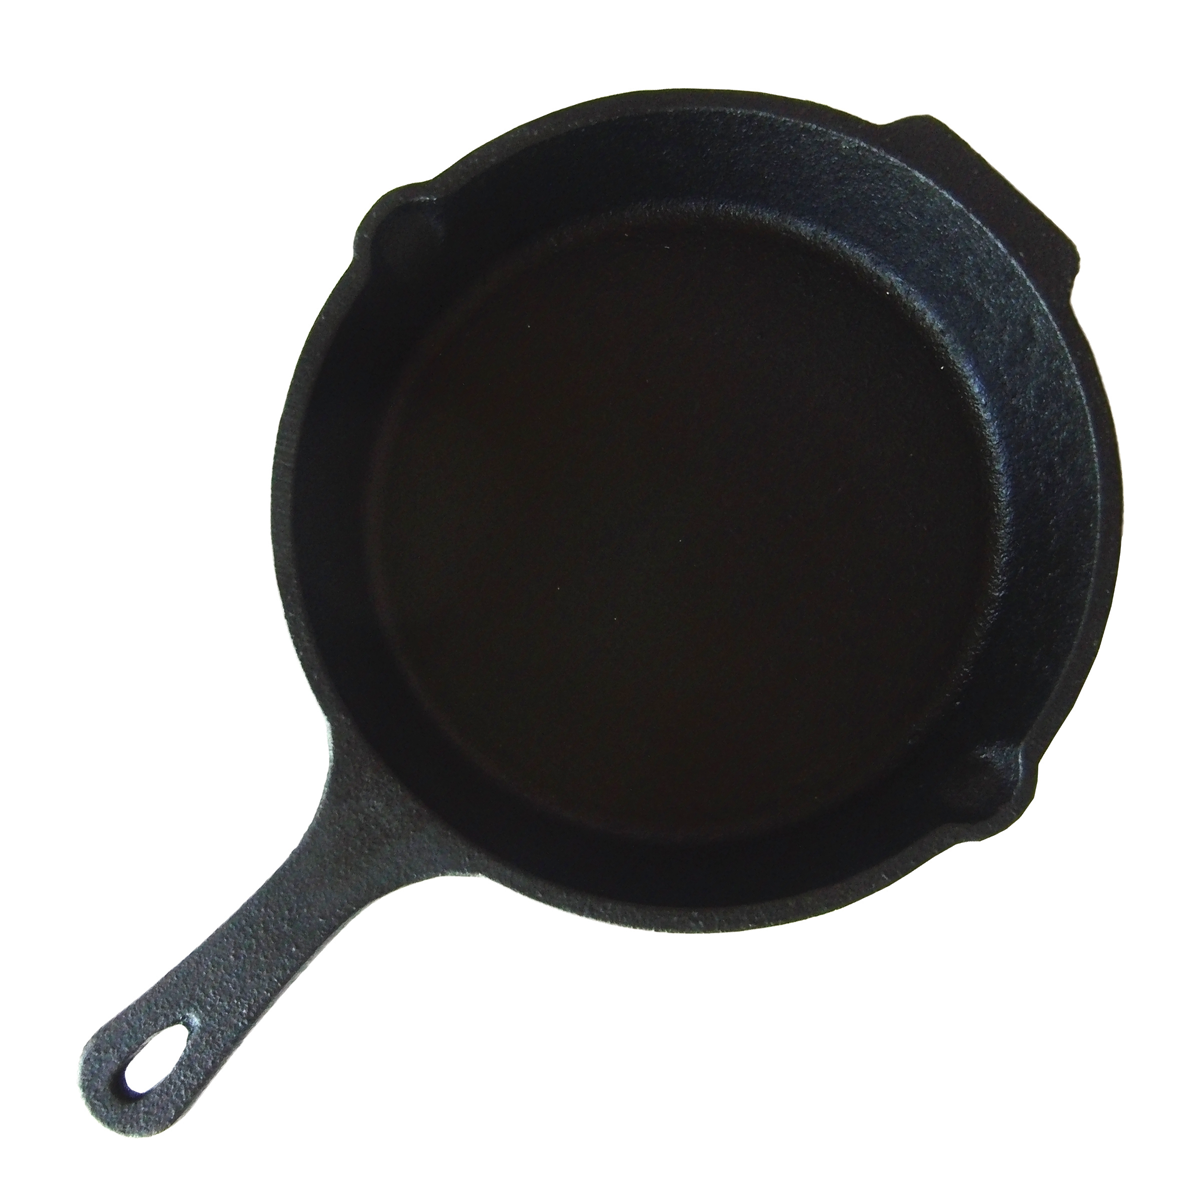 Pre-Seasoned Cast-Iron Skillet